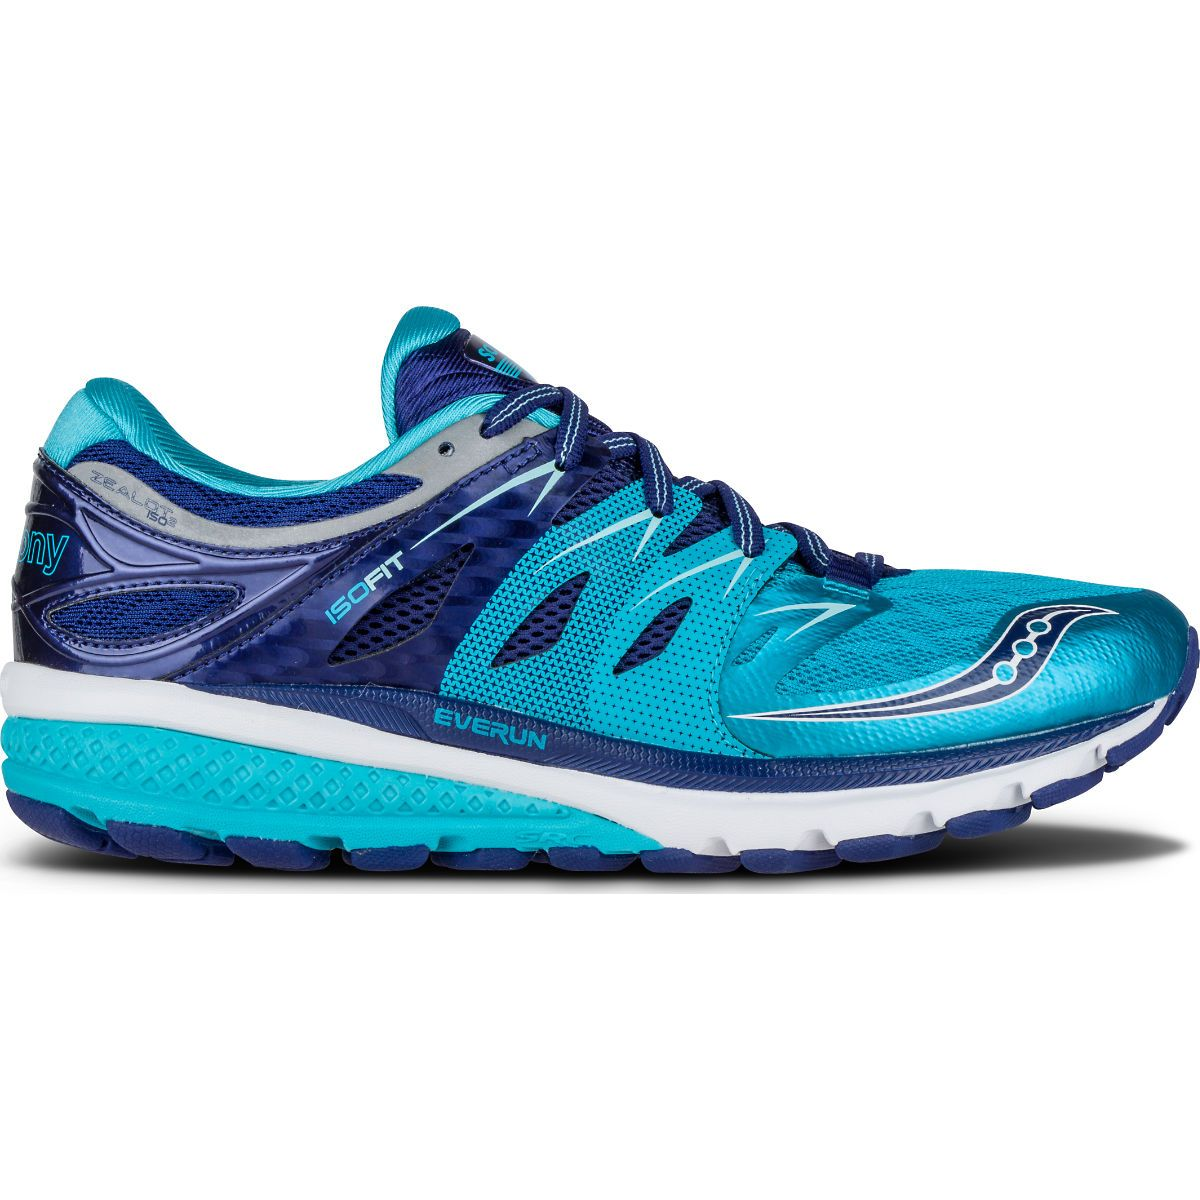 Fully equipped with Everun, Isofit and Tri-Flex advancements, Saucony  Zealot running shoes offer a highly cushioned, lightweight and flexible  ride.